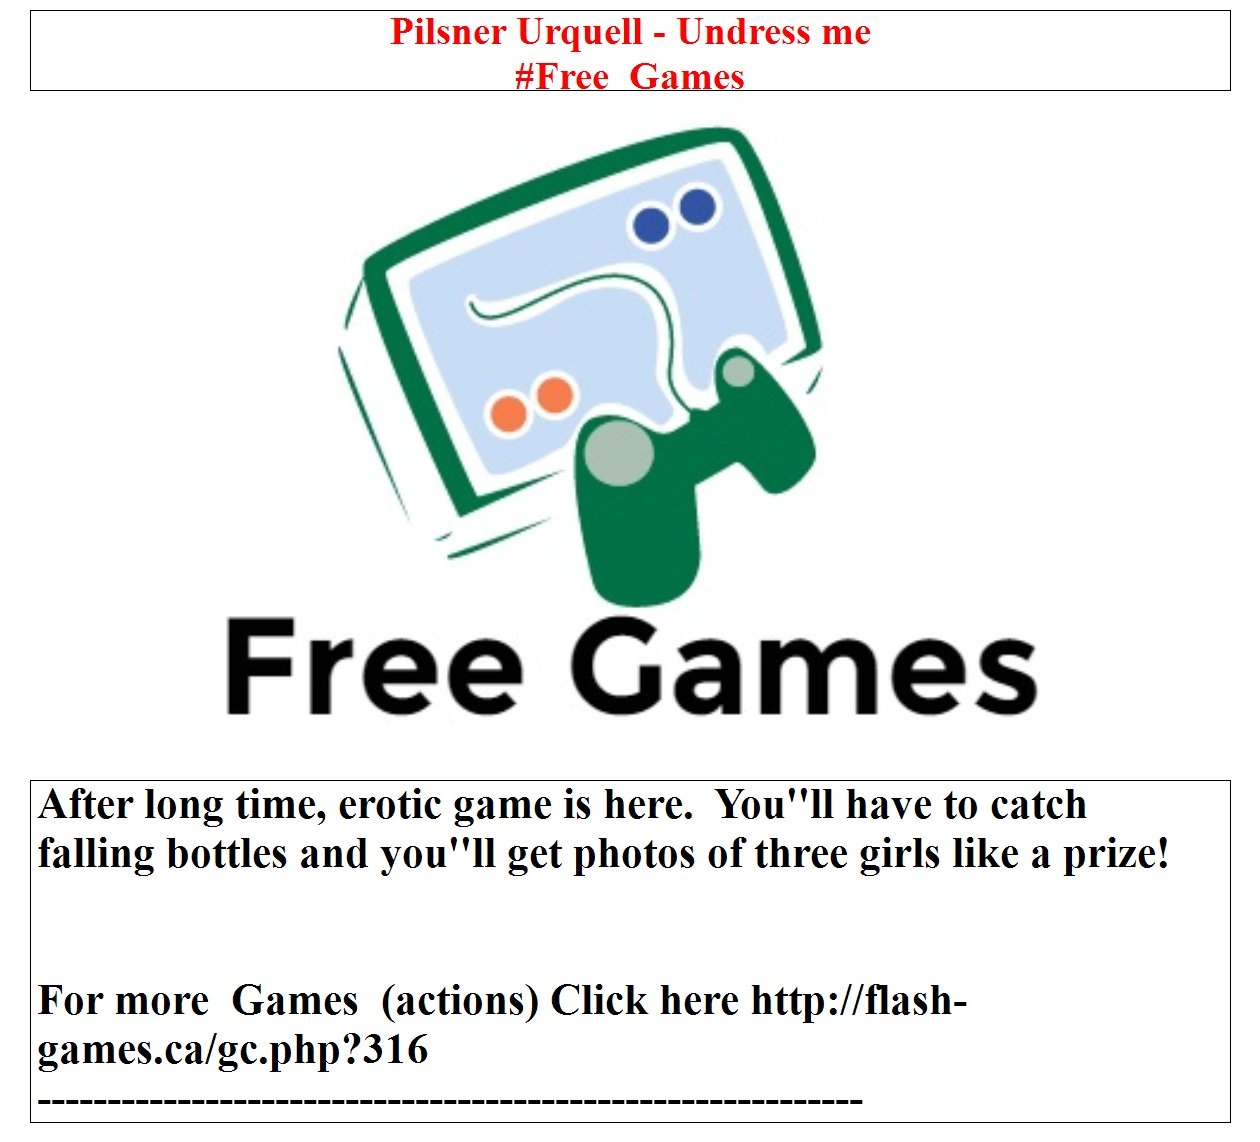 Pilsner urquell games free download by comppodeper issuu.